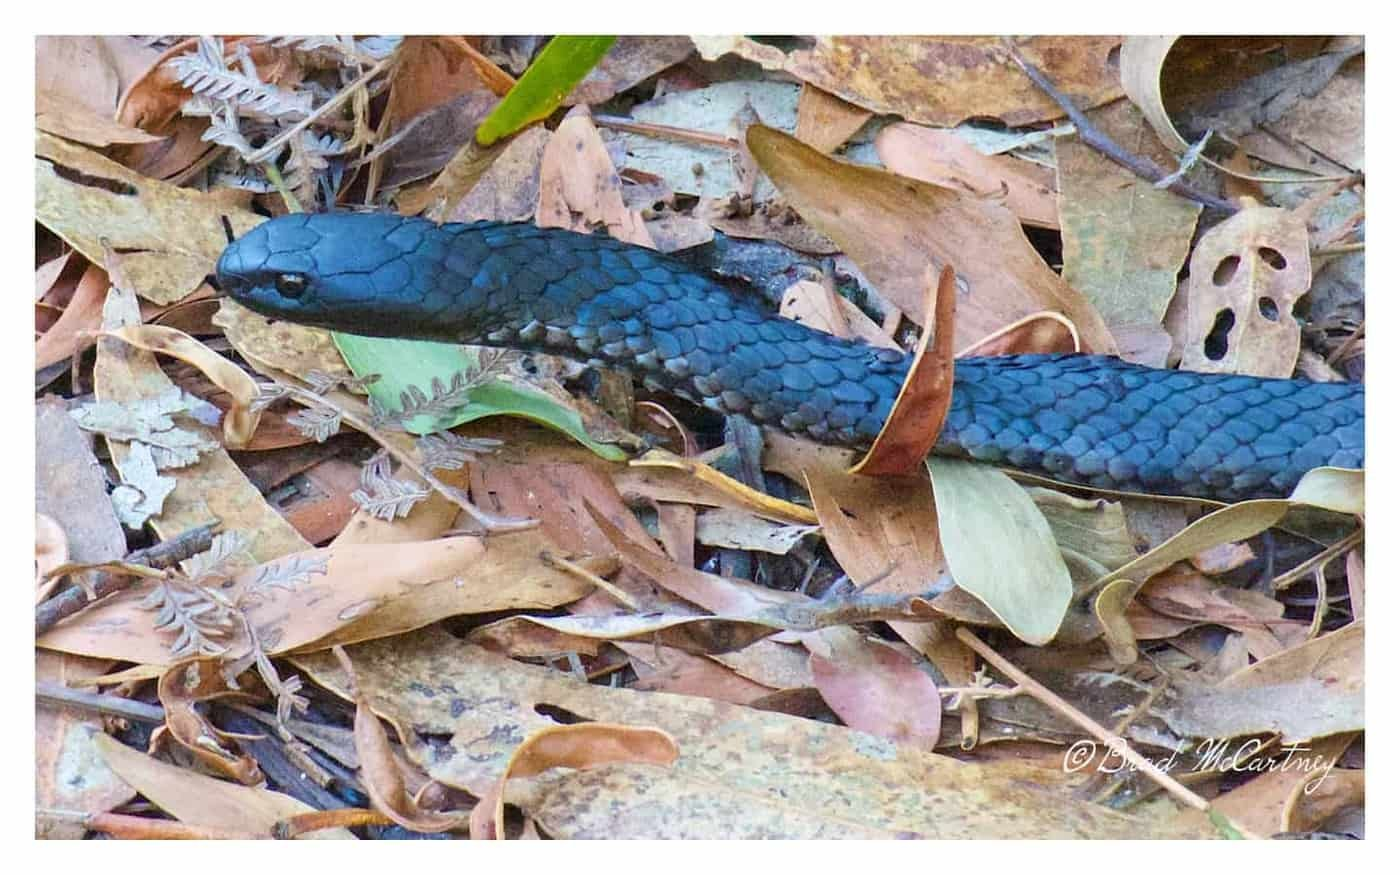 Tiger Snake on the inland track